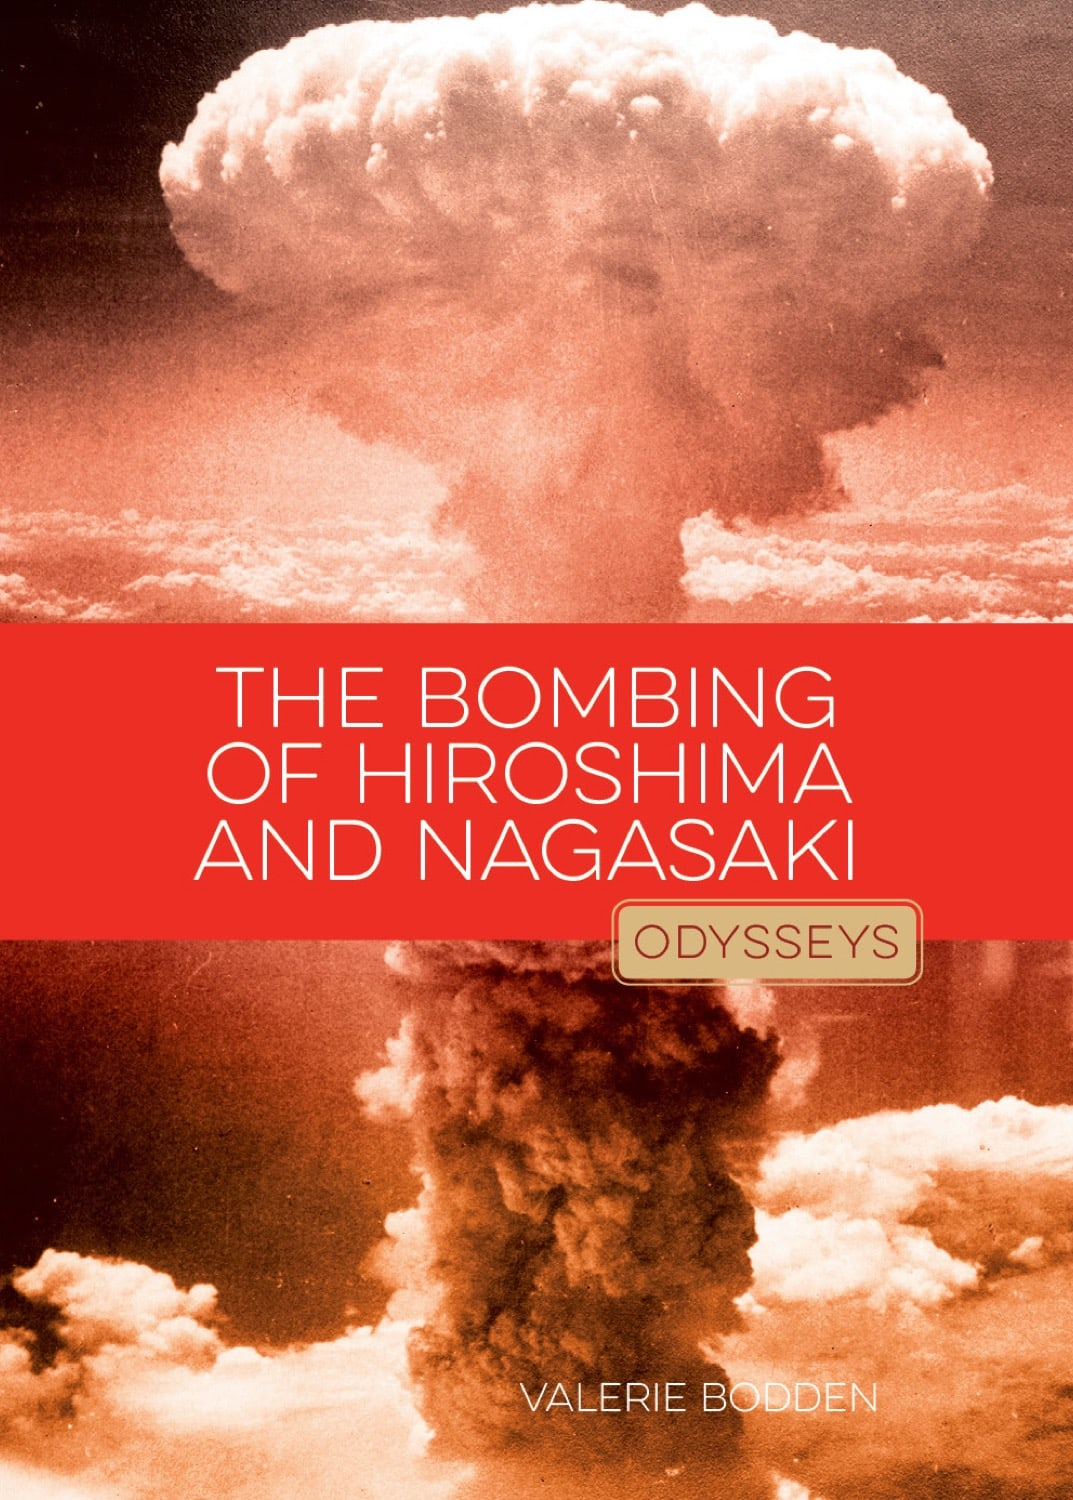 Odysseys in History: Bombing of Hiroshima & Nagasaki, The